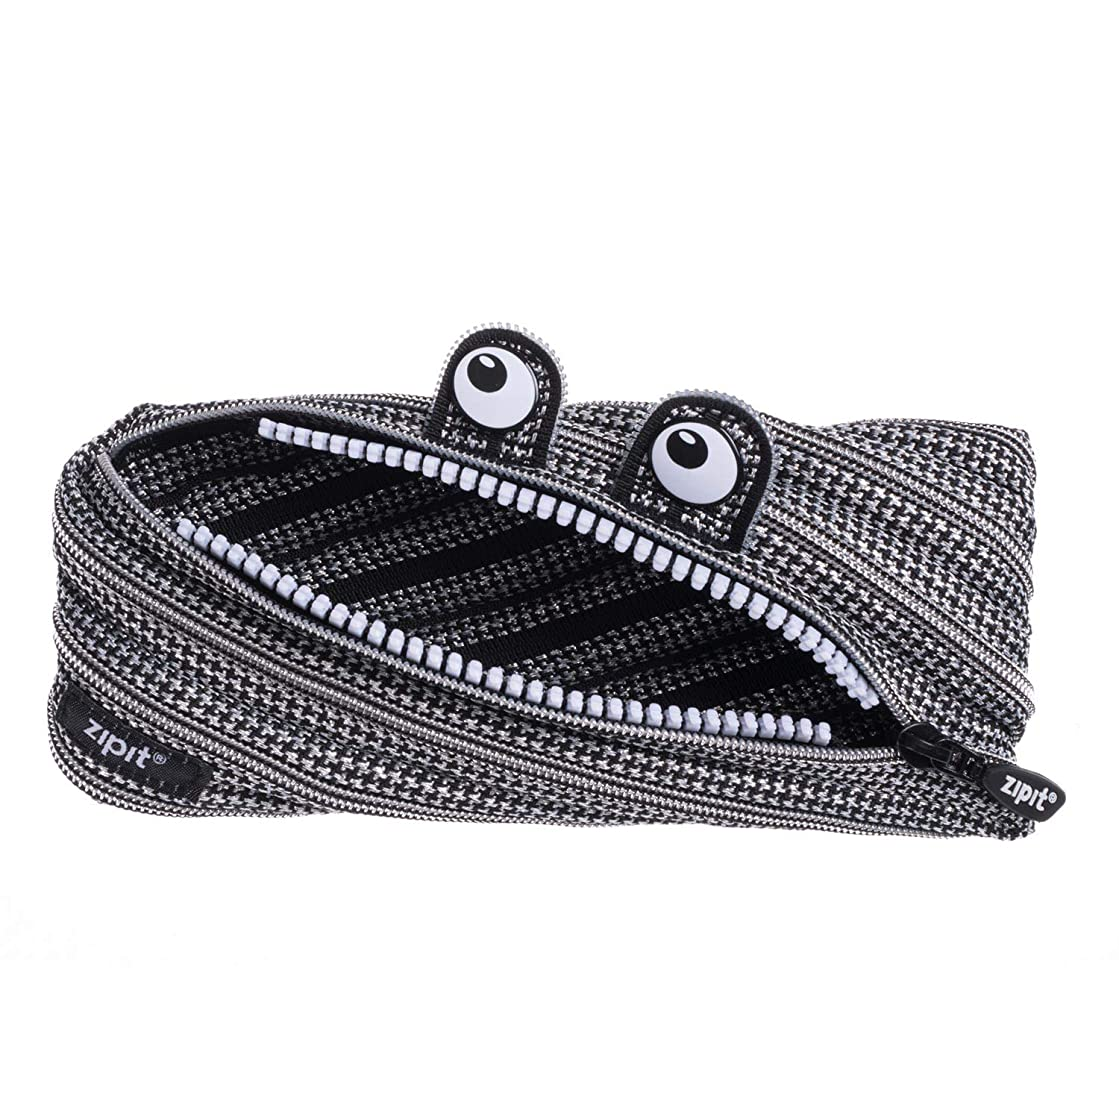 ZIPIT Monster Pencil Case Special Edition, Black & Silver